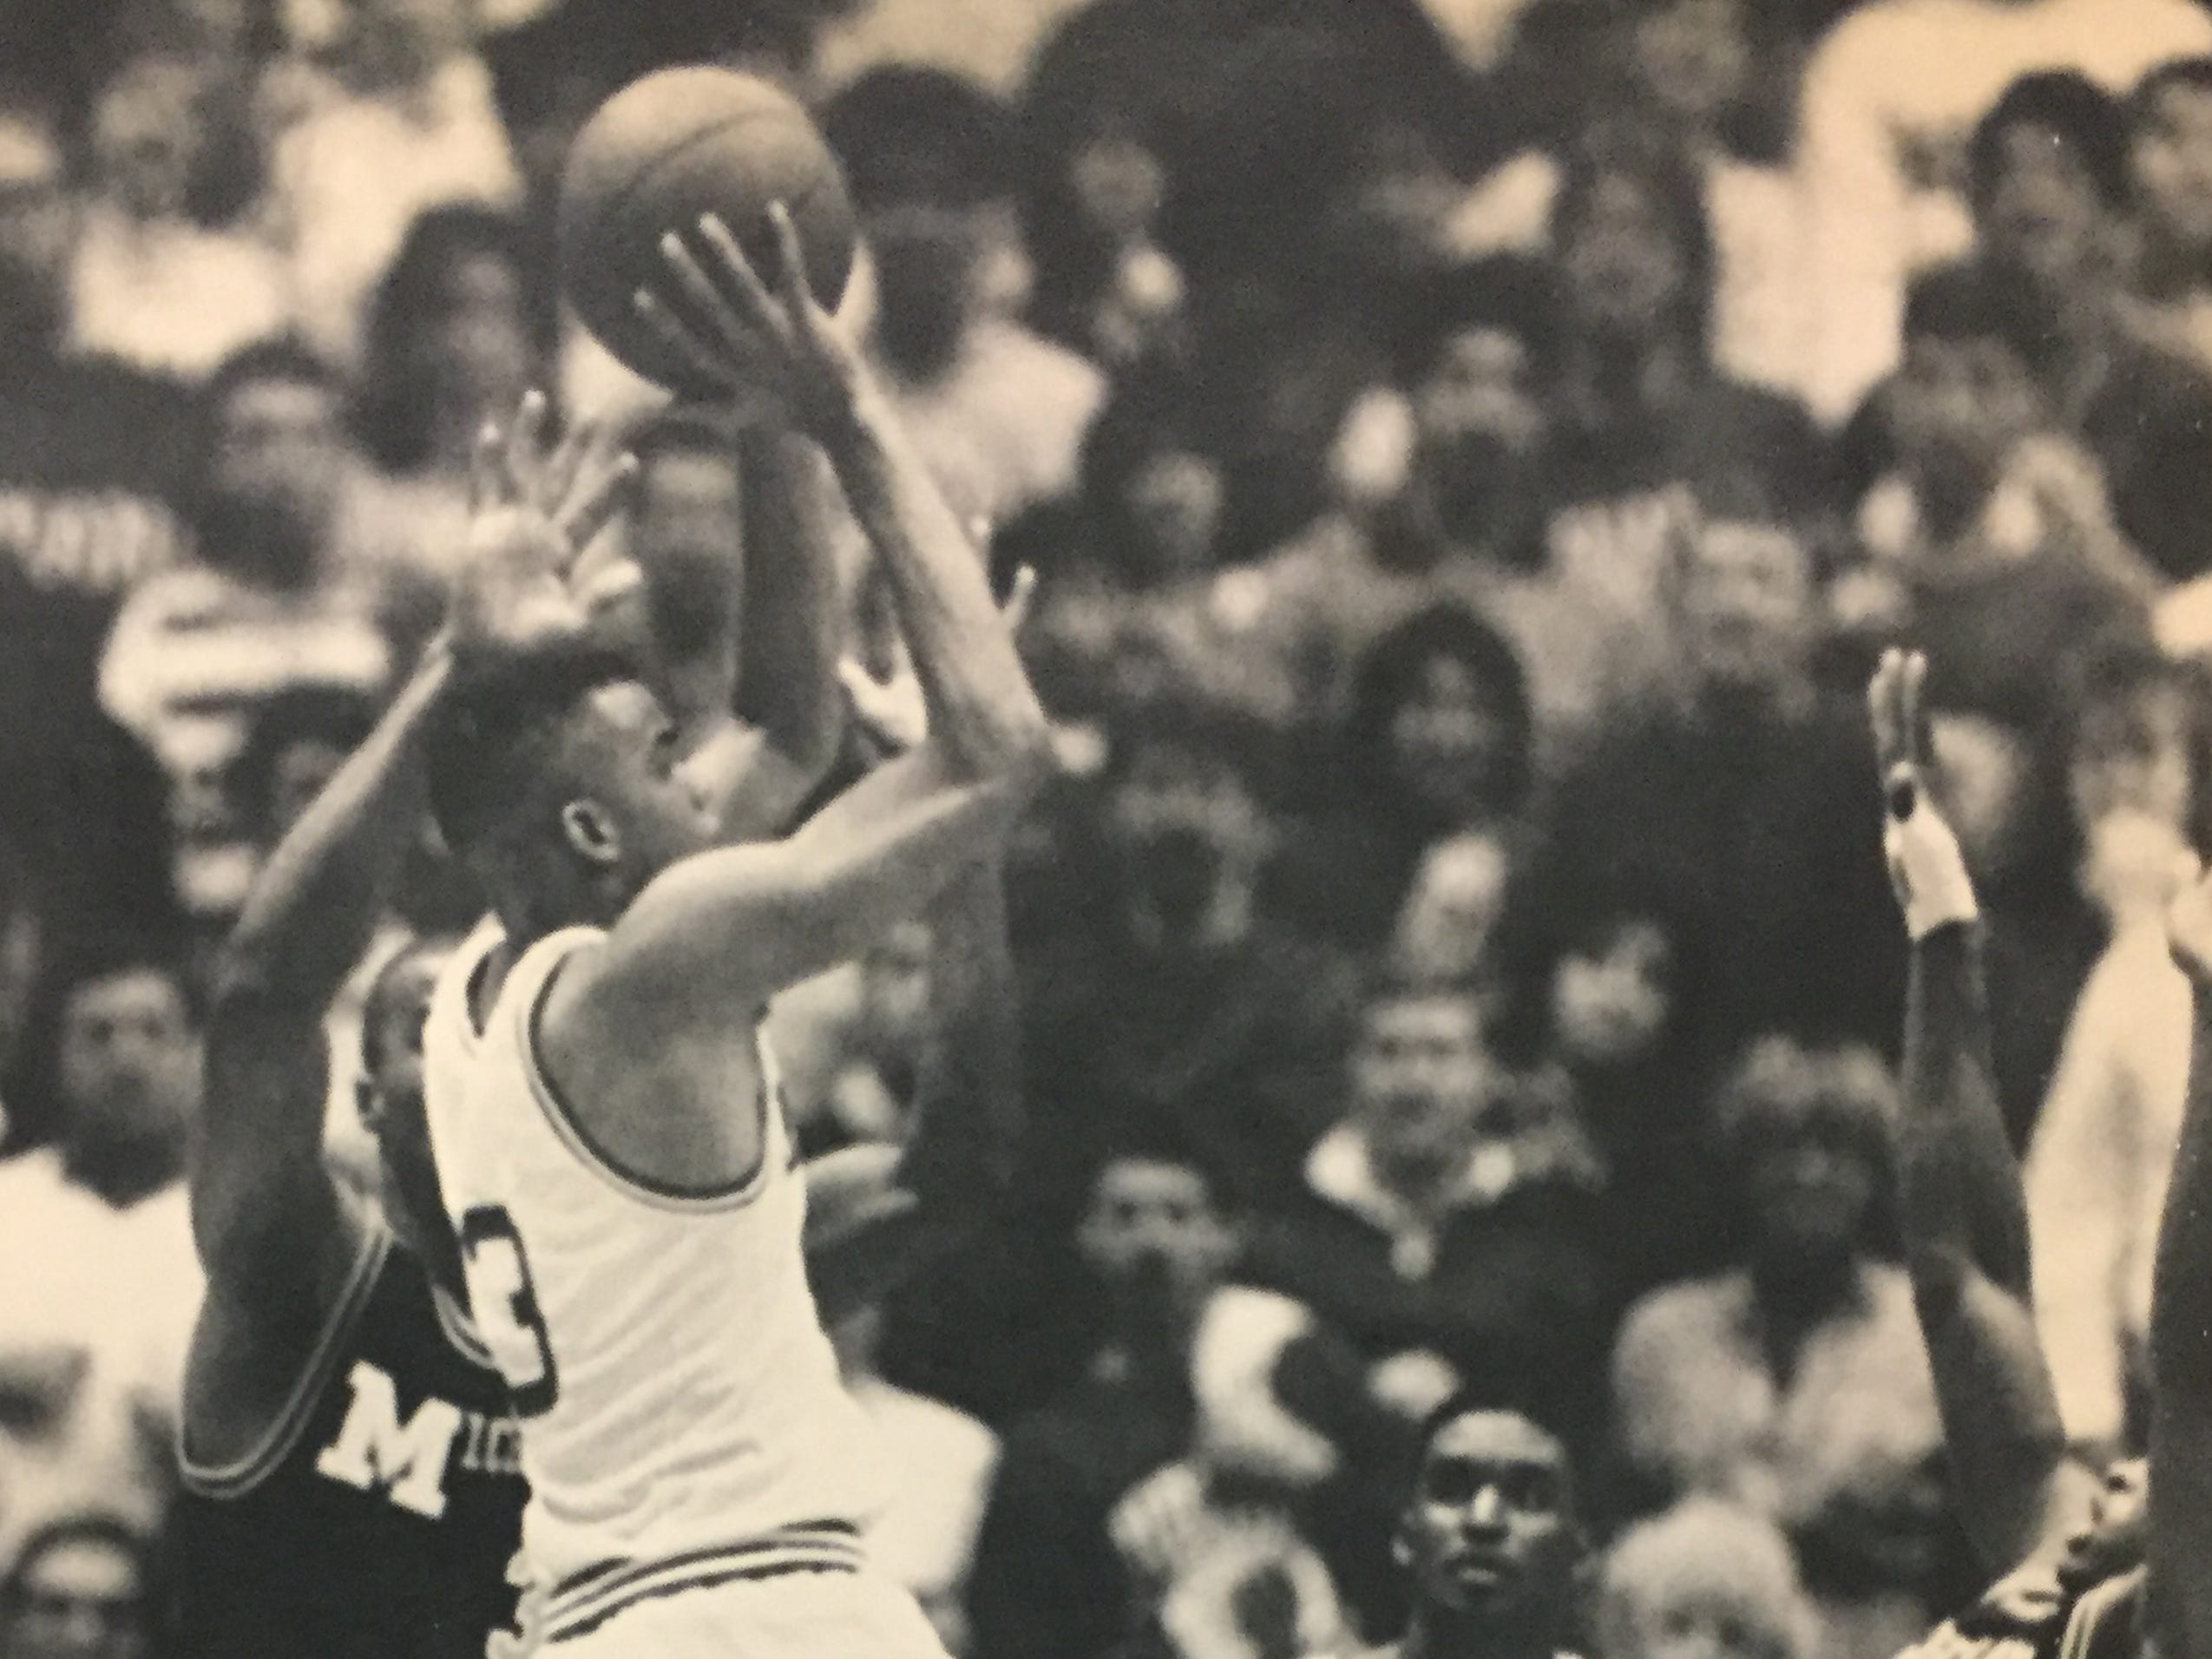 Jay Edwards shoots a 3-pointer over Michigan's Loy Vaught, left, and Rumeal Robinson to help IU defeat the Wolverines 76-75, Feb. 19, 1989.